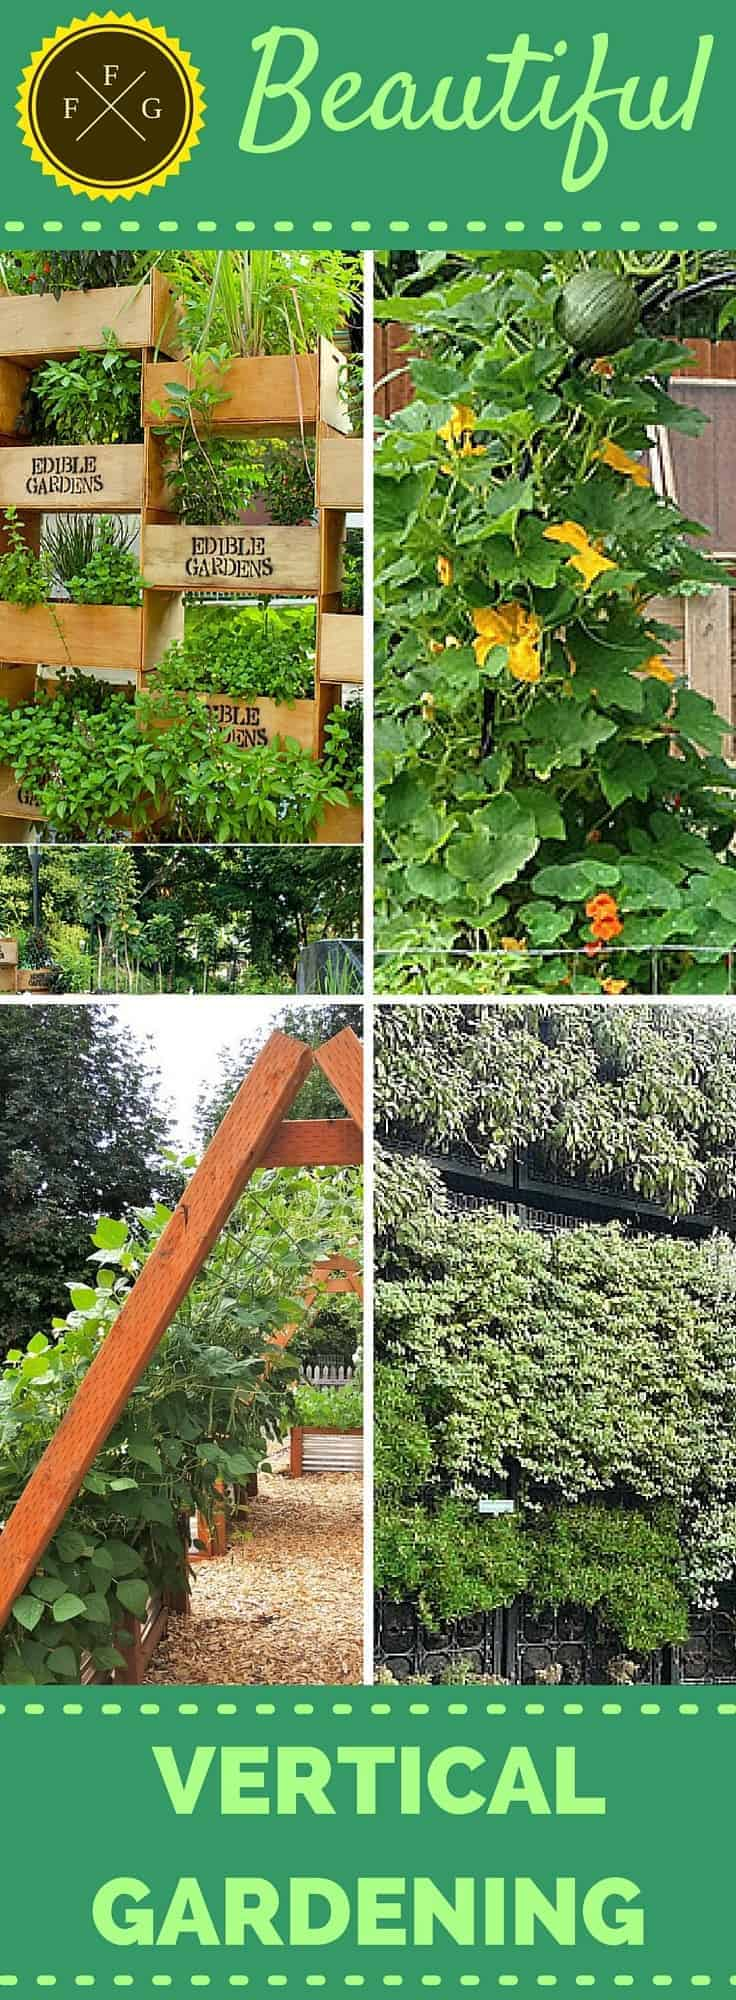 Beautiful edible vertical garden designs family food garden for Vertical garden design